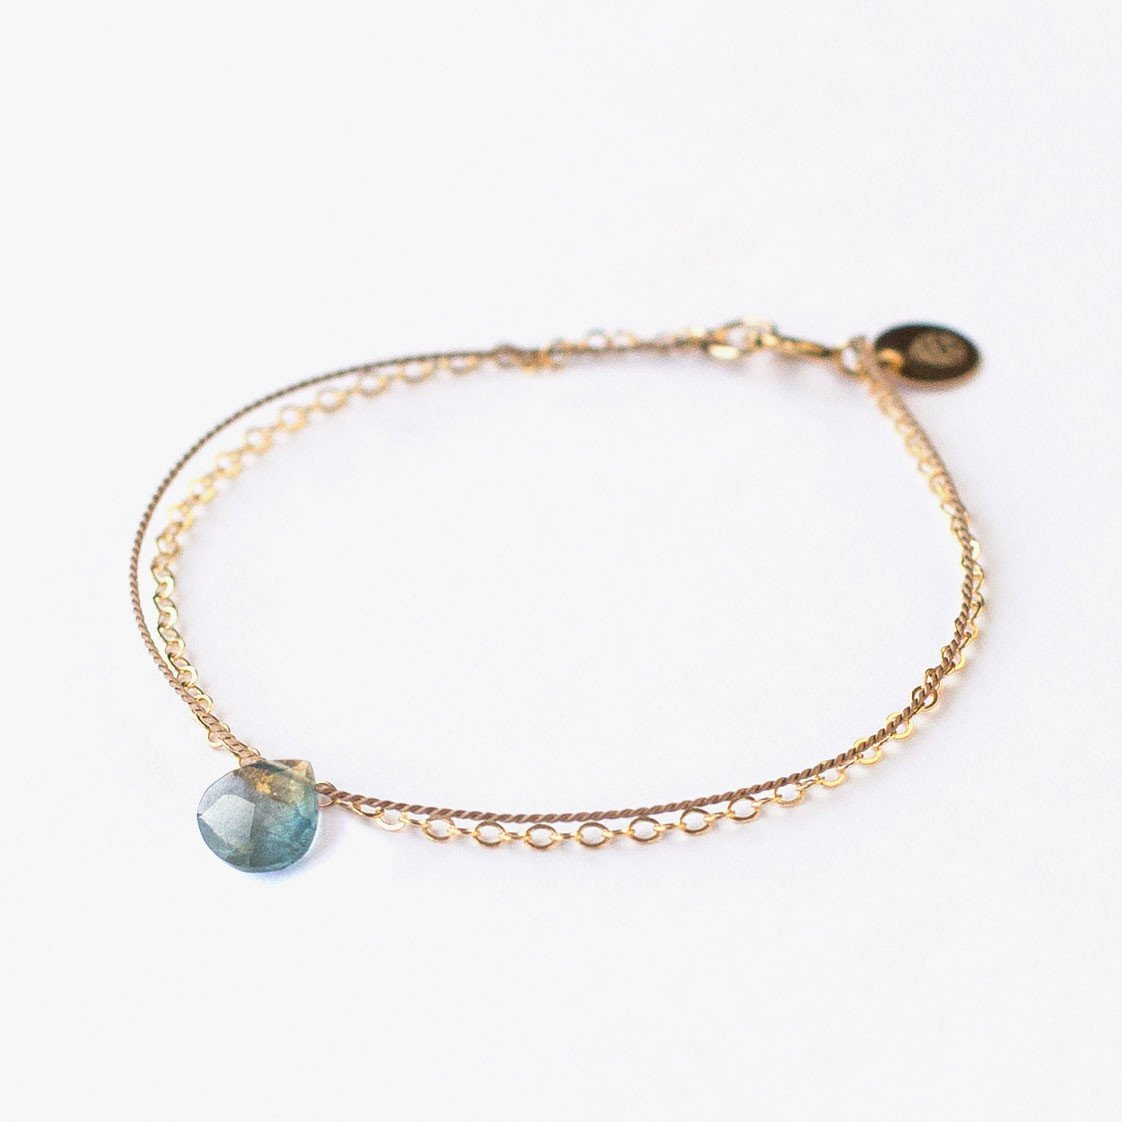 Wanderlust Life Ethically Handmade jewellery made in the UK. Minimalist gold and fine cord jewellery. march birthstone, gold & silk aquamarine bracelet